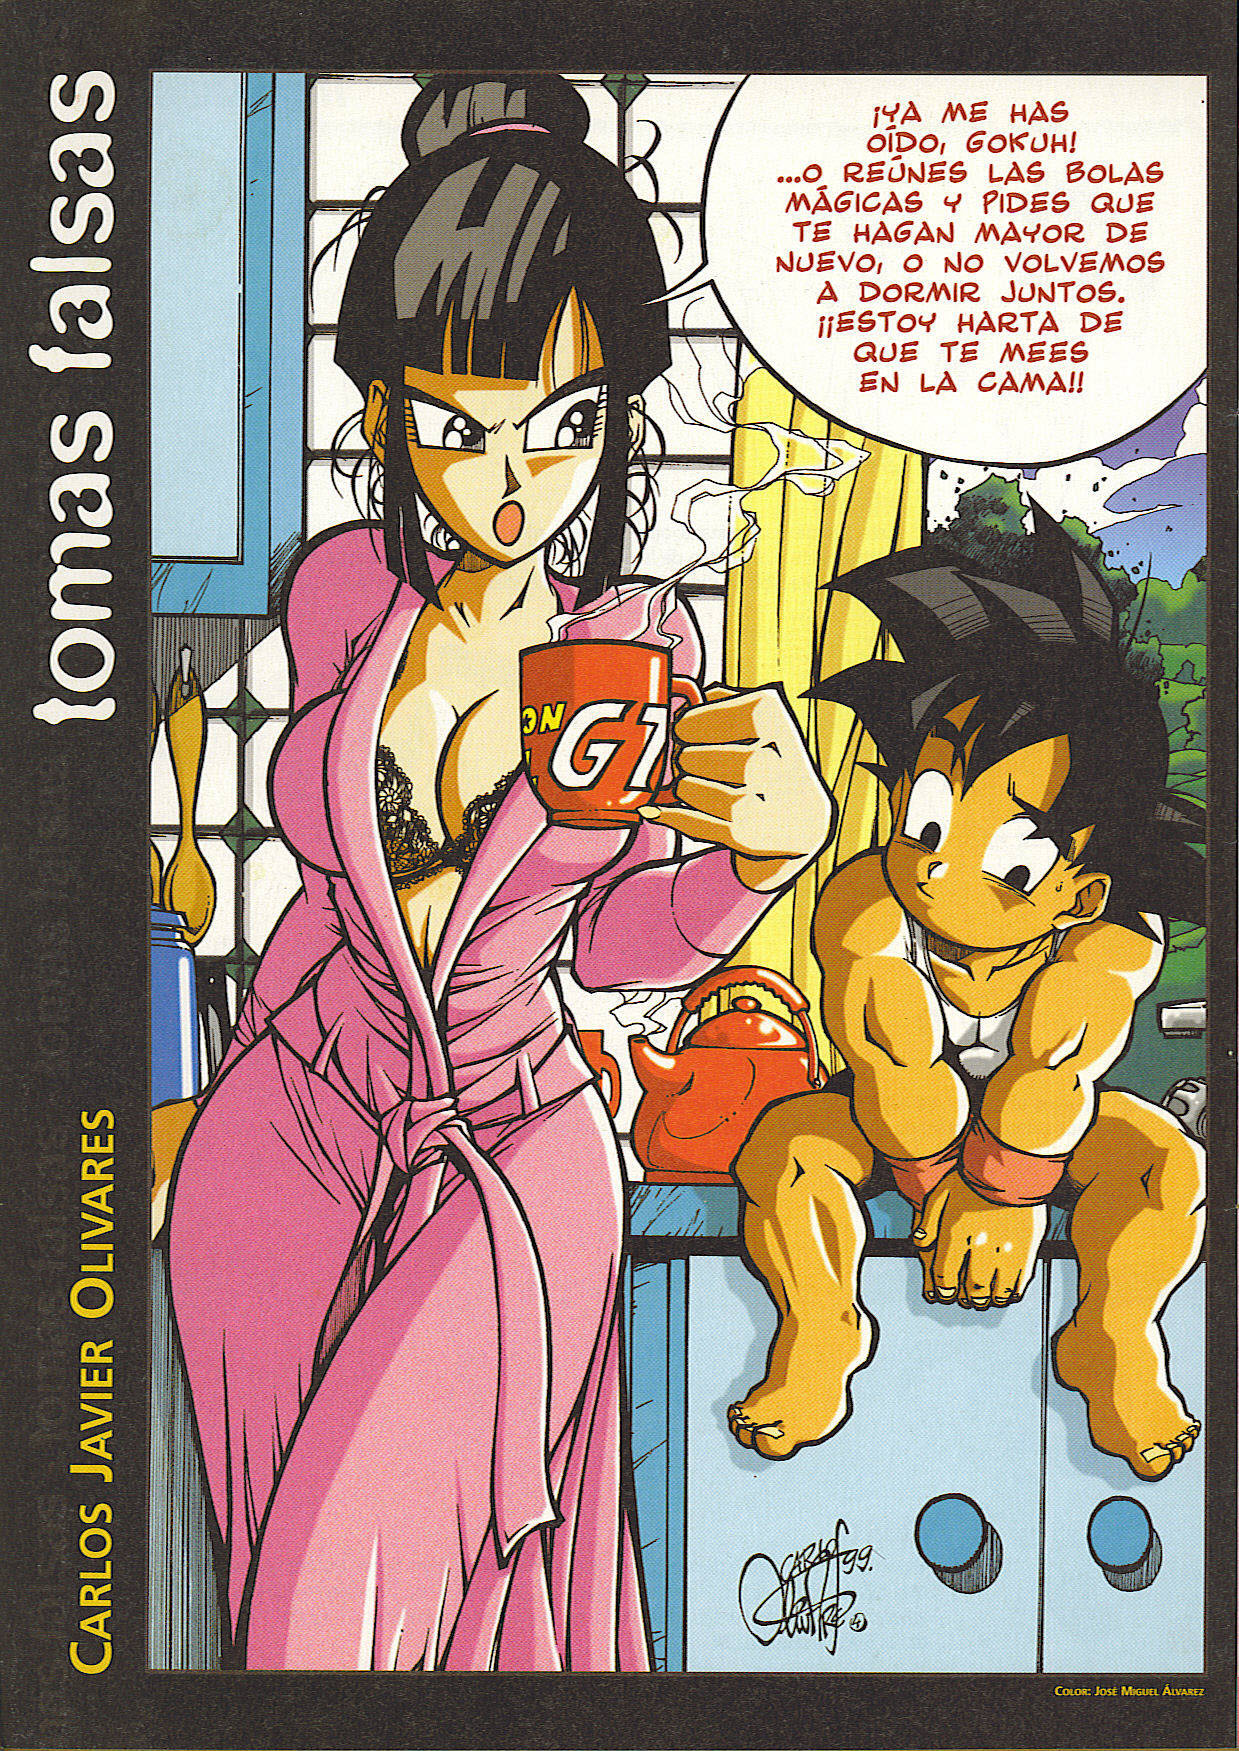 from Adrian funny dragon ball z porn